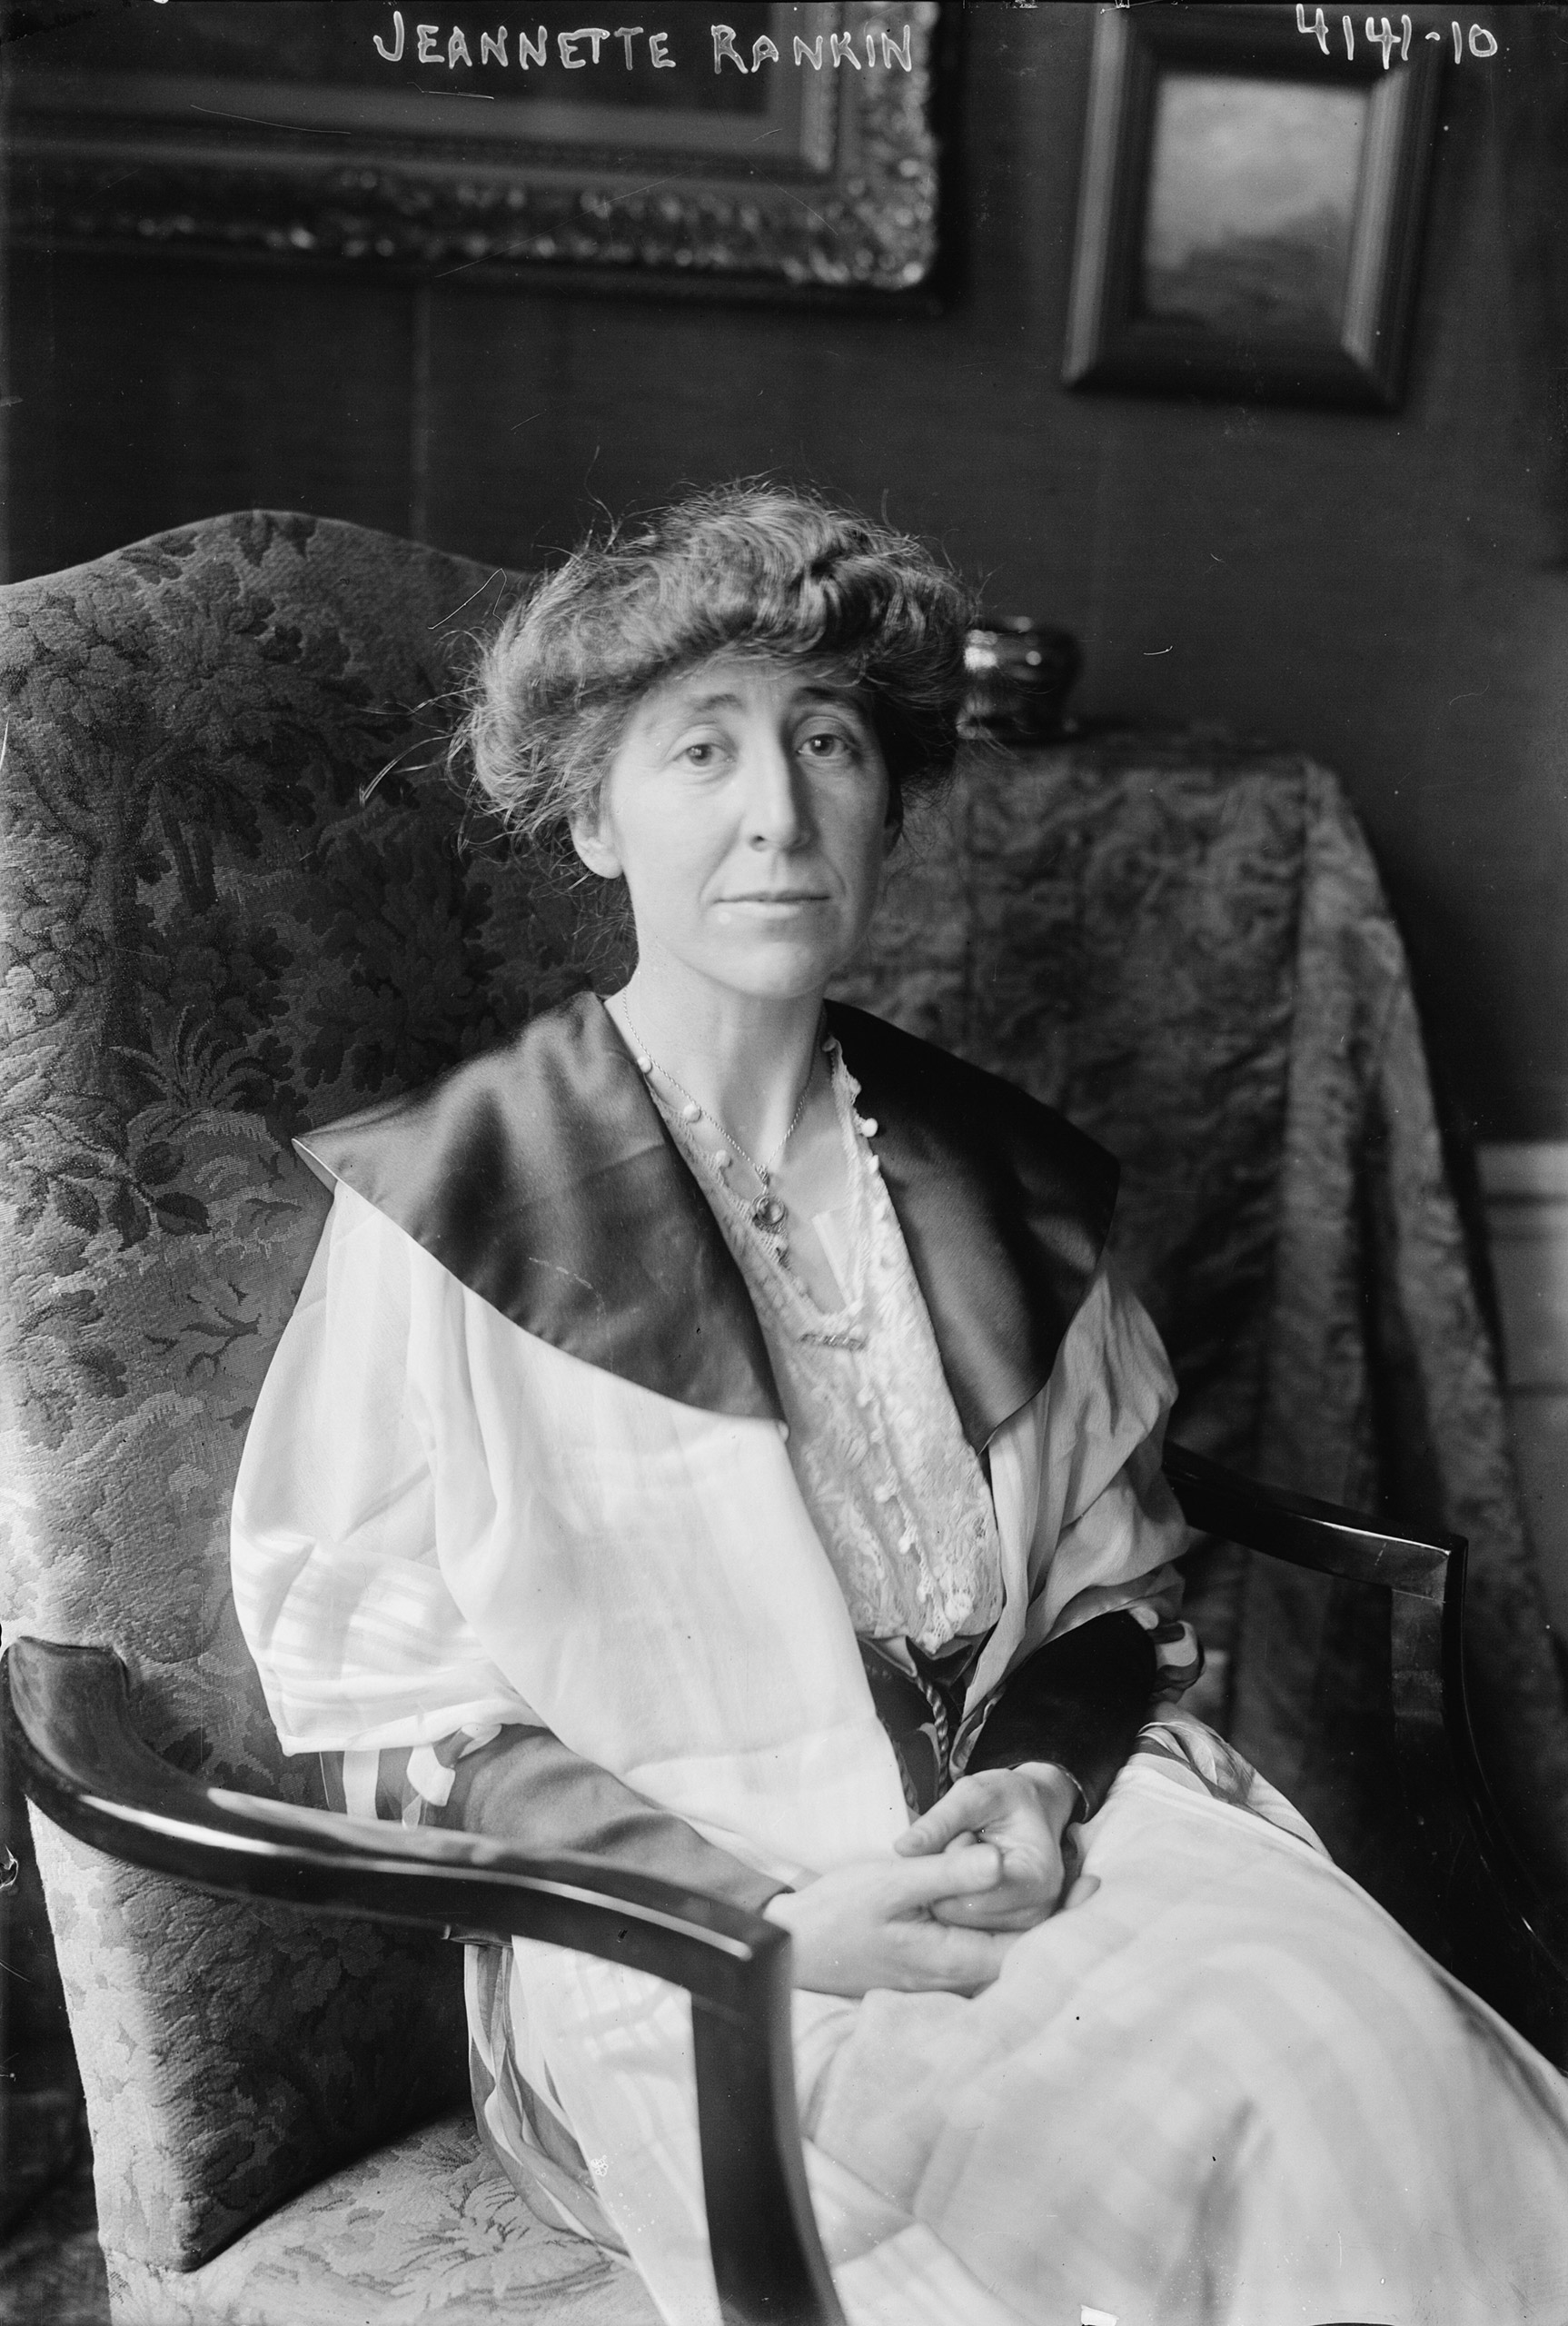 Jeannette Pickering Rankin (1880-1973), a member of the House of Representatives who was elected in 1916 as the first woman to serve in the U.S. Congress.